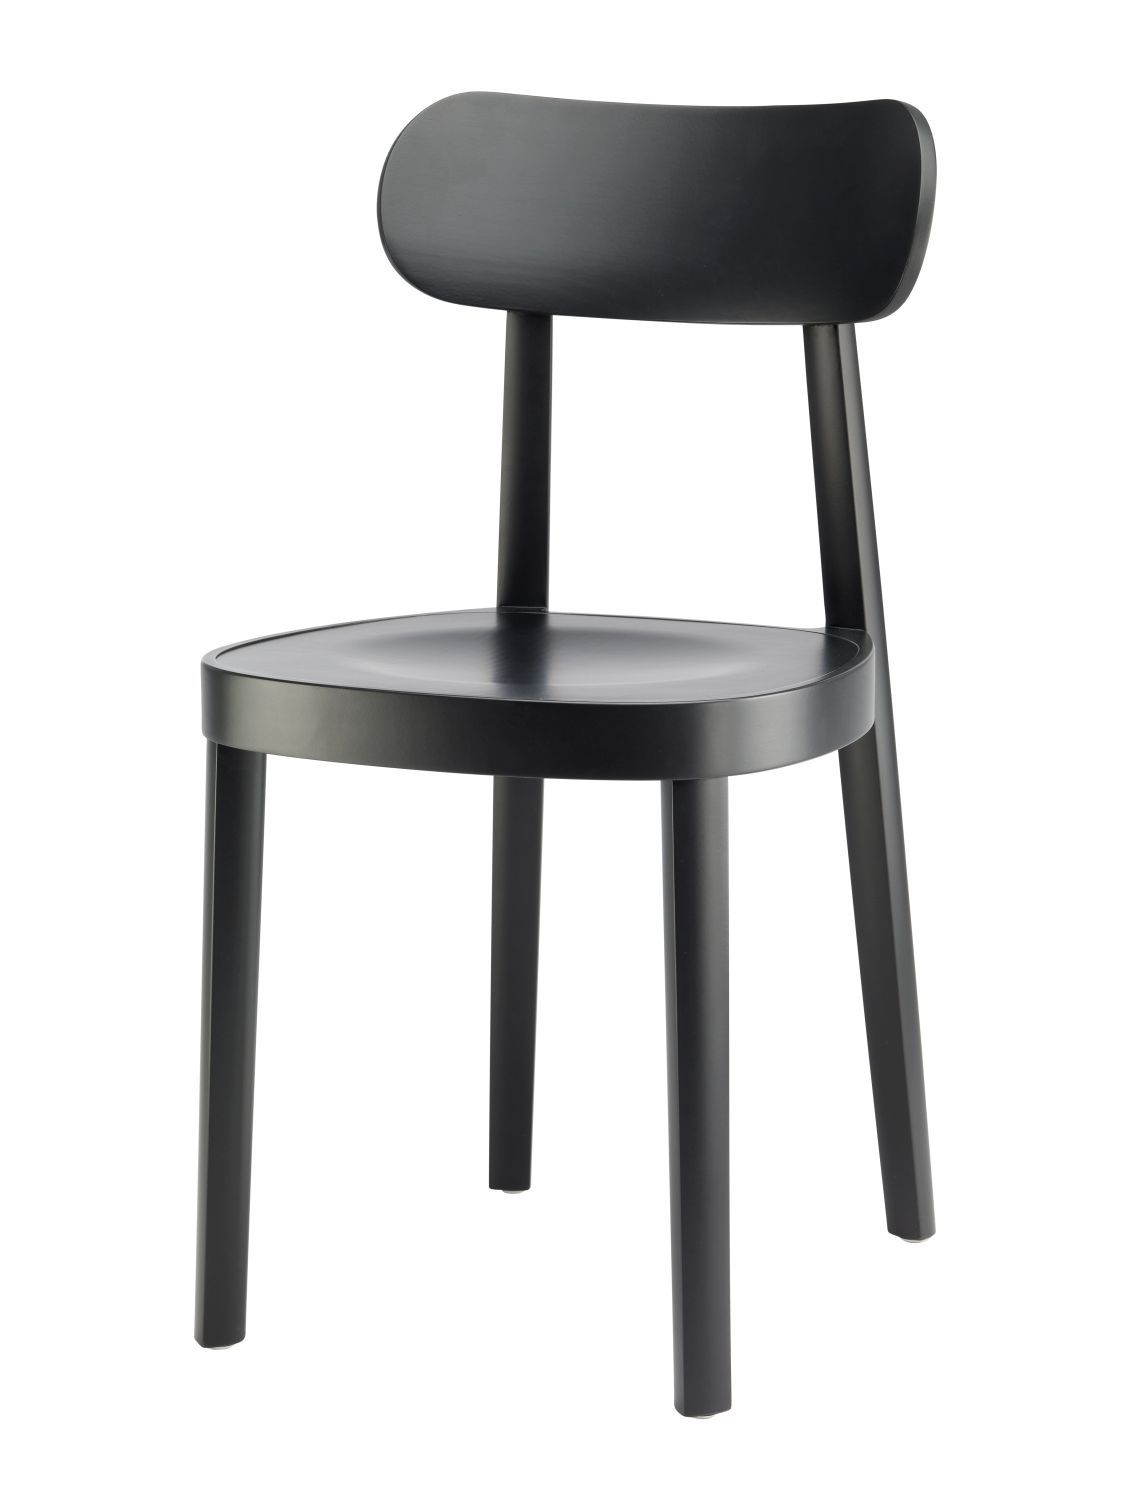 Thonet 118 M Stuhl Schwarz Tp 29 Indoor In 2019